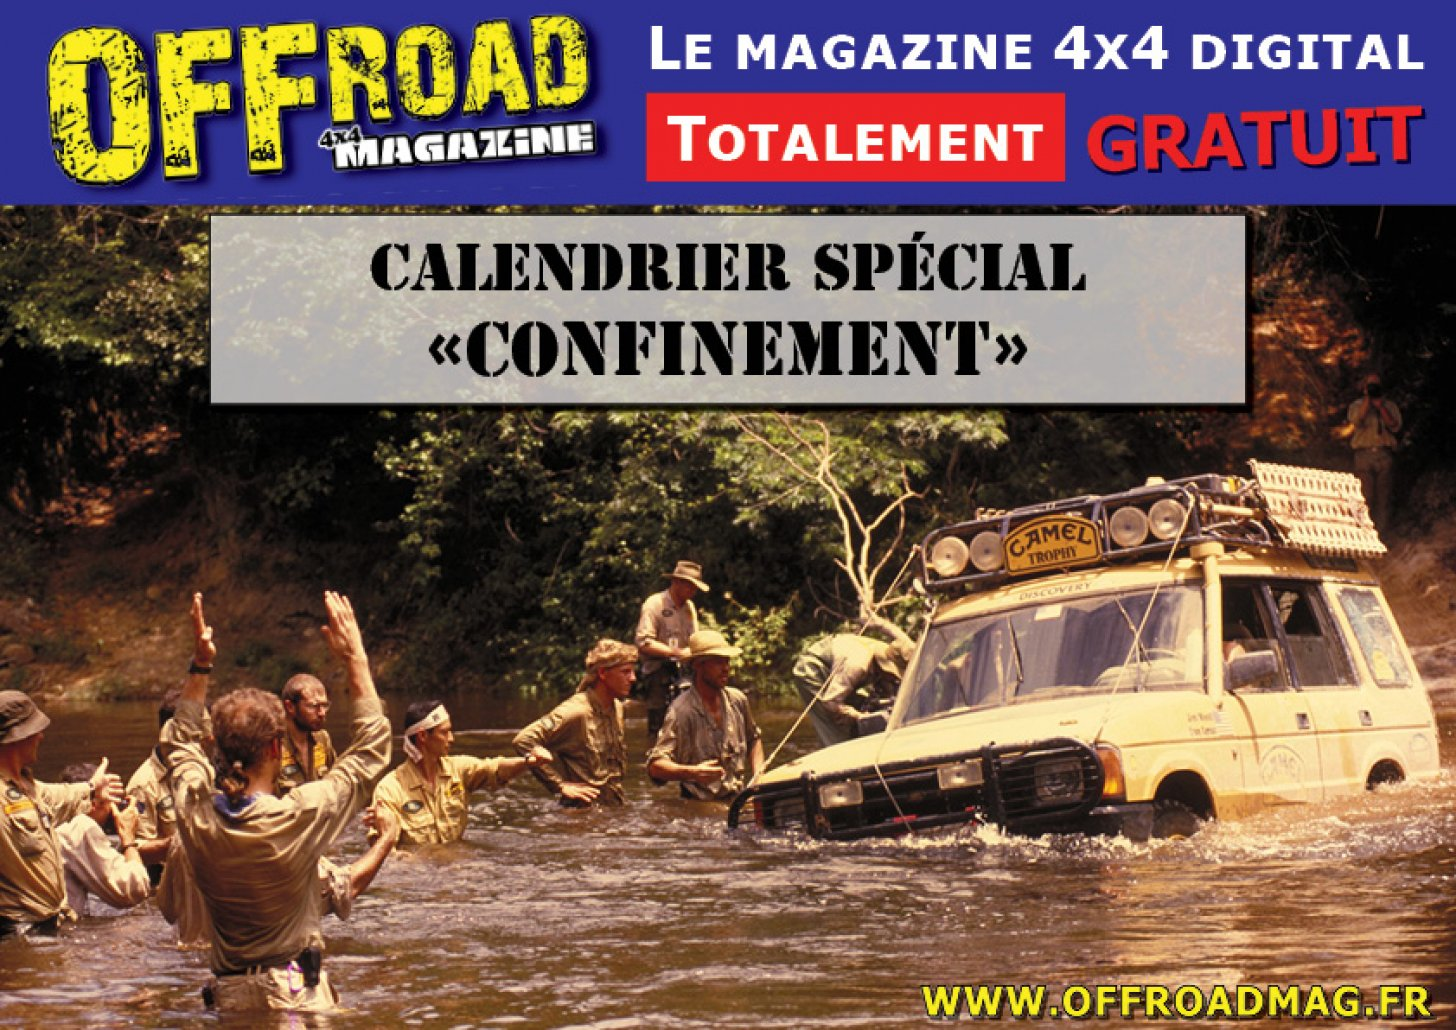 Calendriers spécial Confinement Offroad Mag